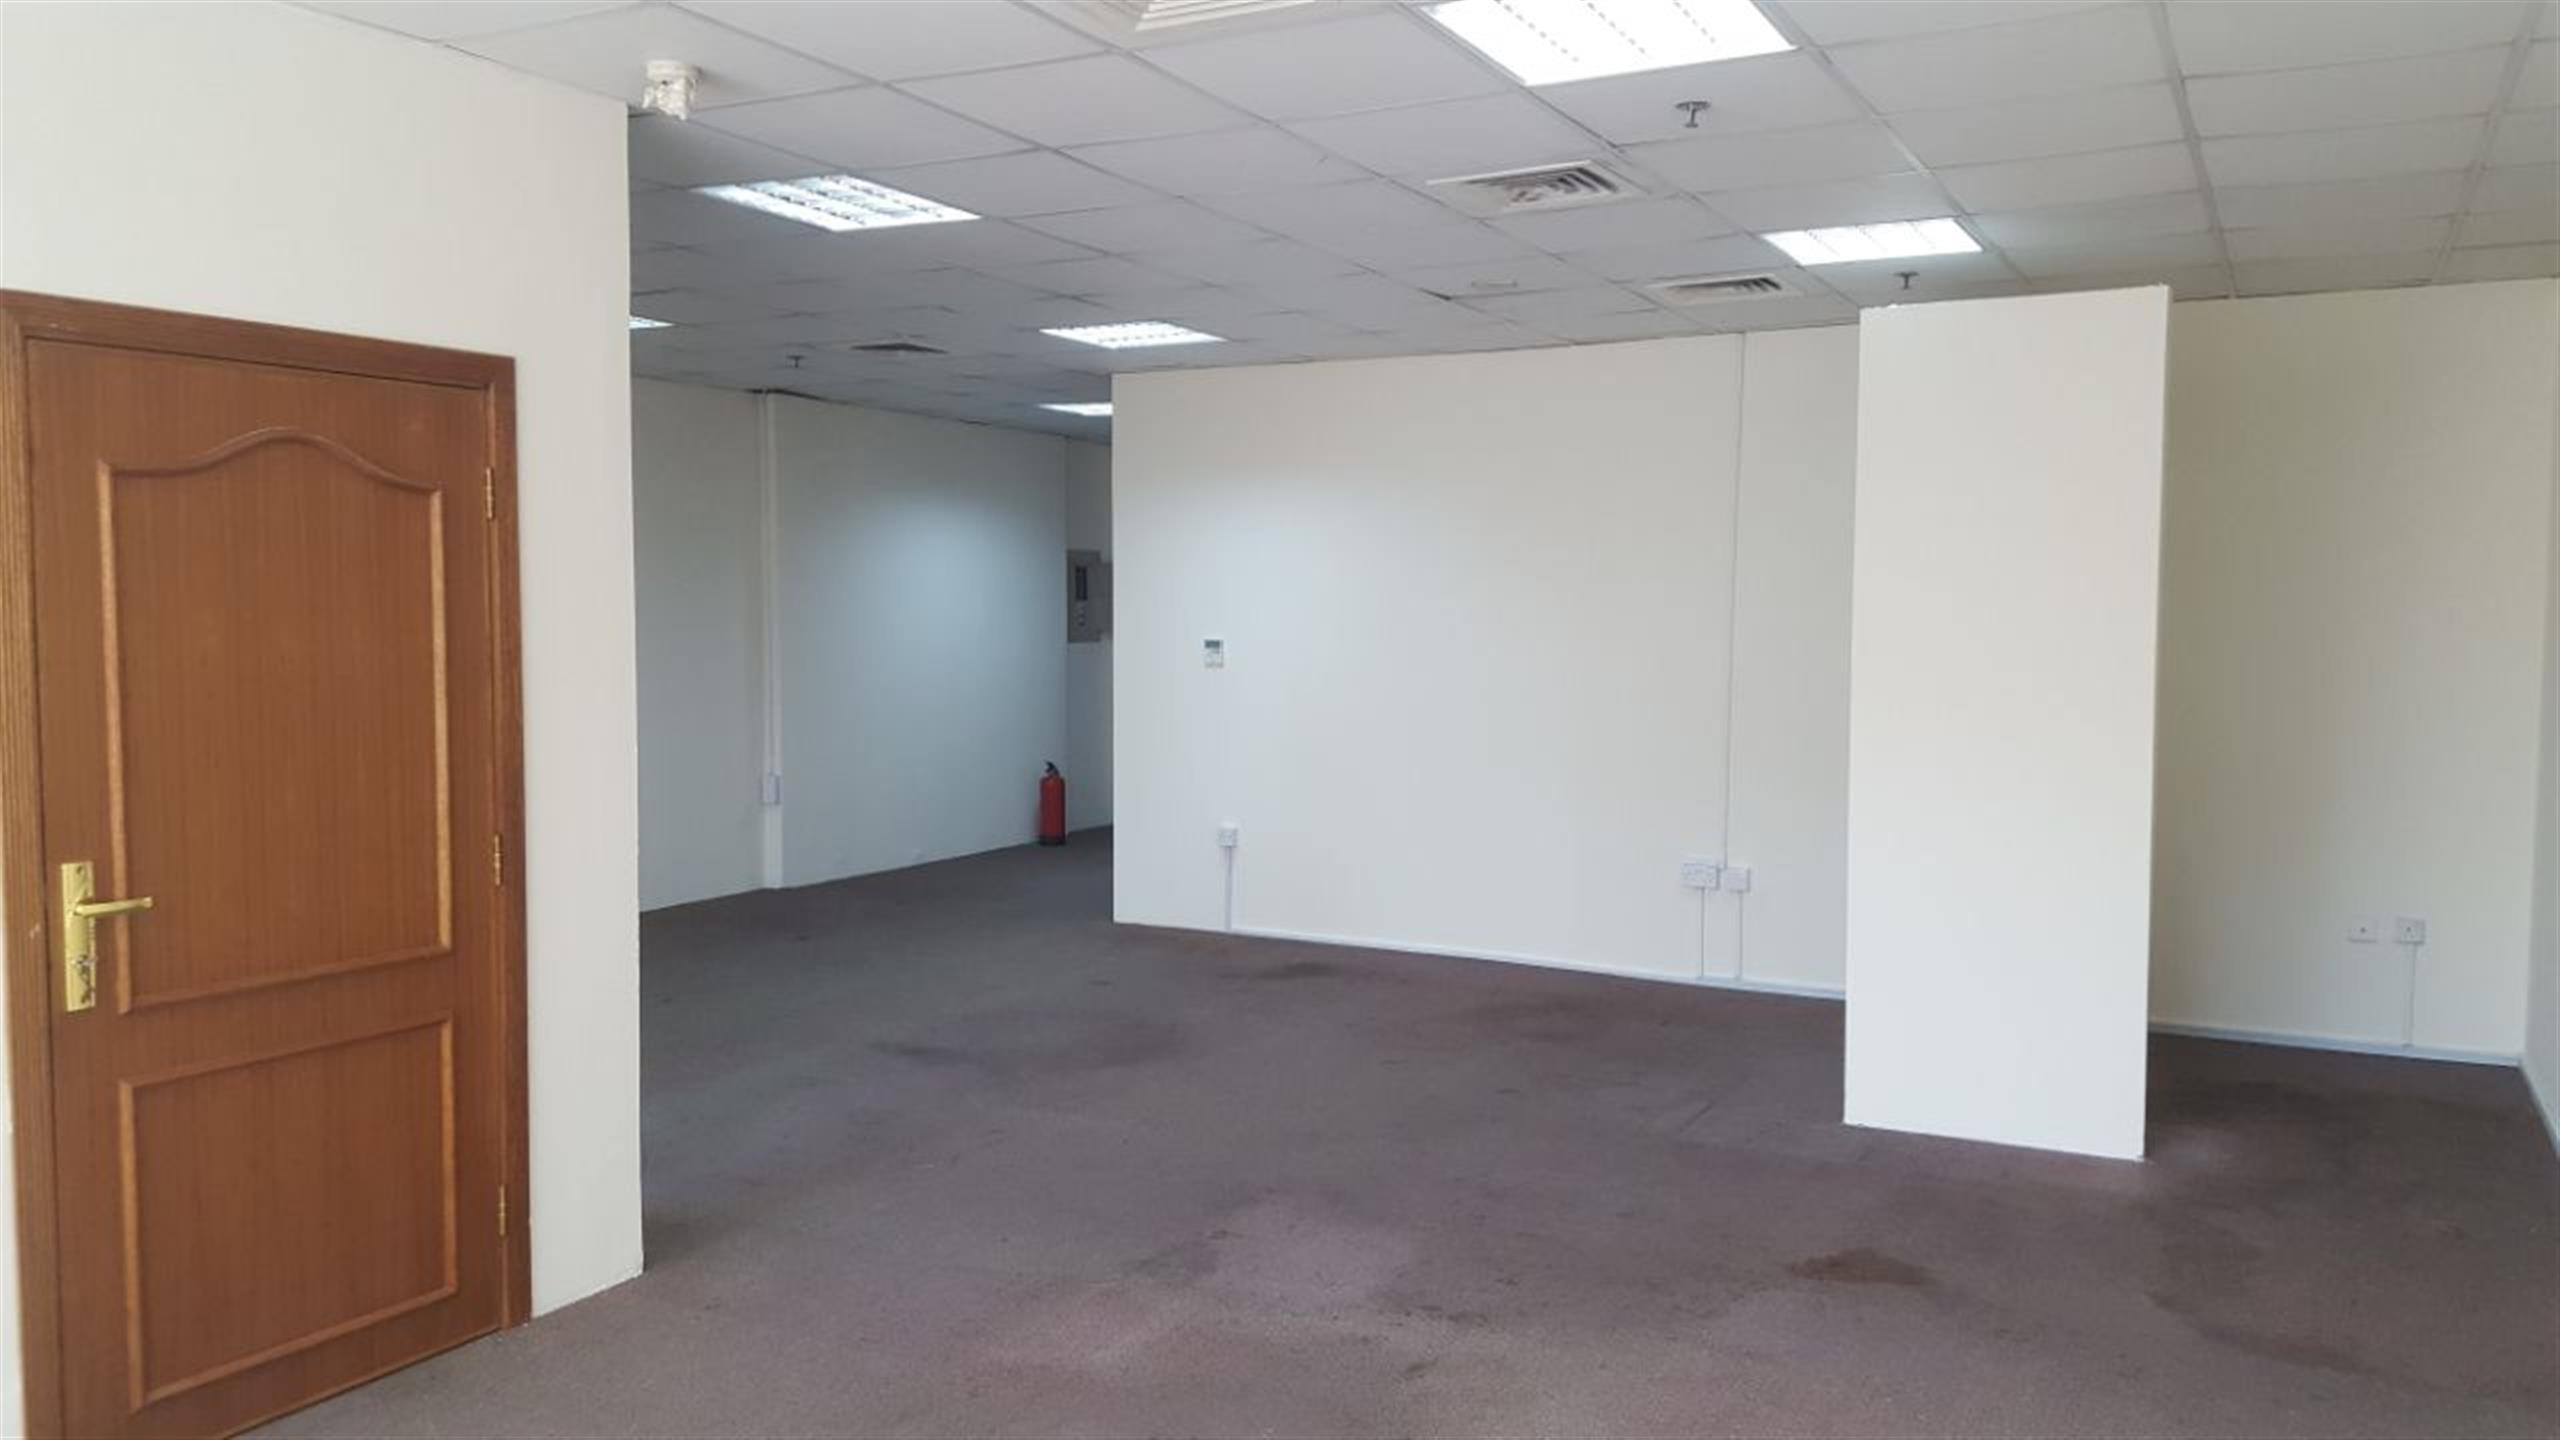 76 Sqm 3 Room Partitioned Office space for rent at Munthaza | Qatar ...